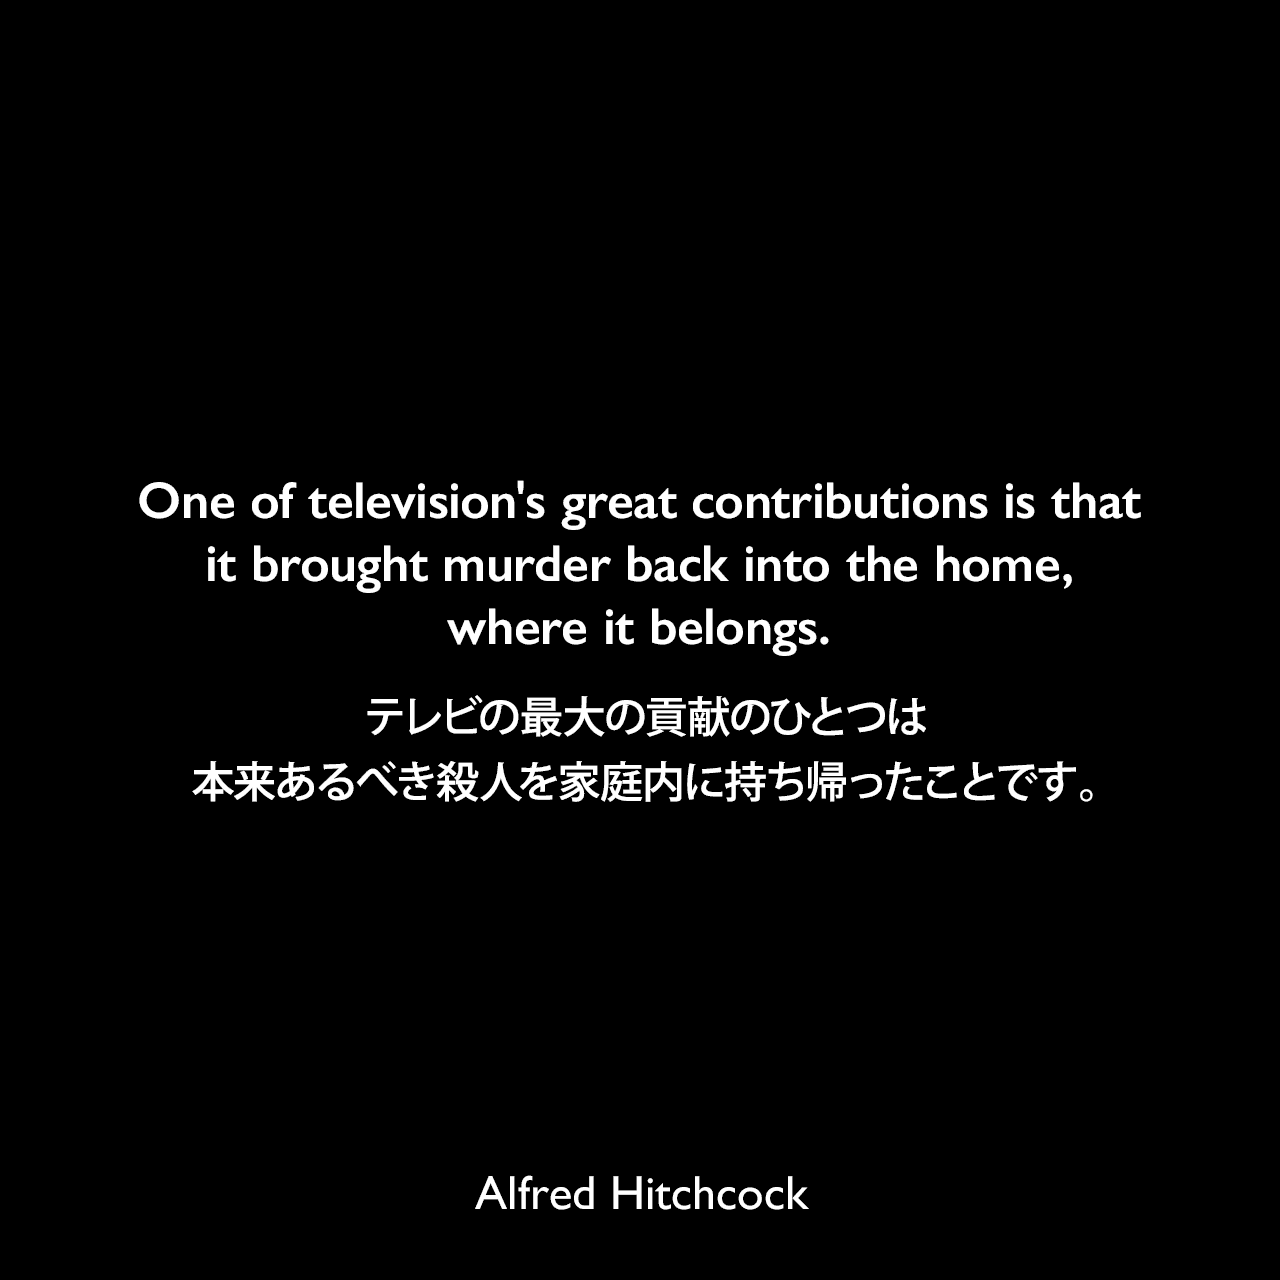 One of television's great contributions is that it brought murder back into the home, where it belongs.テレビの最大の貢献のひとつは、本来あるべき殺人を家庭内に持ち帰ったことです。- 1966年8月 アメリカの新聞「National Observer(廃刊)」よりAlfred Hitchcock